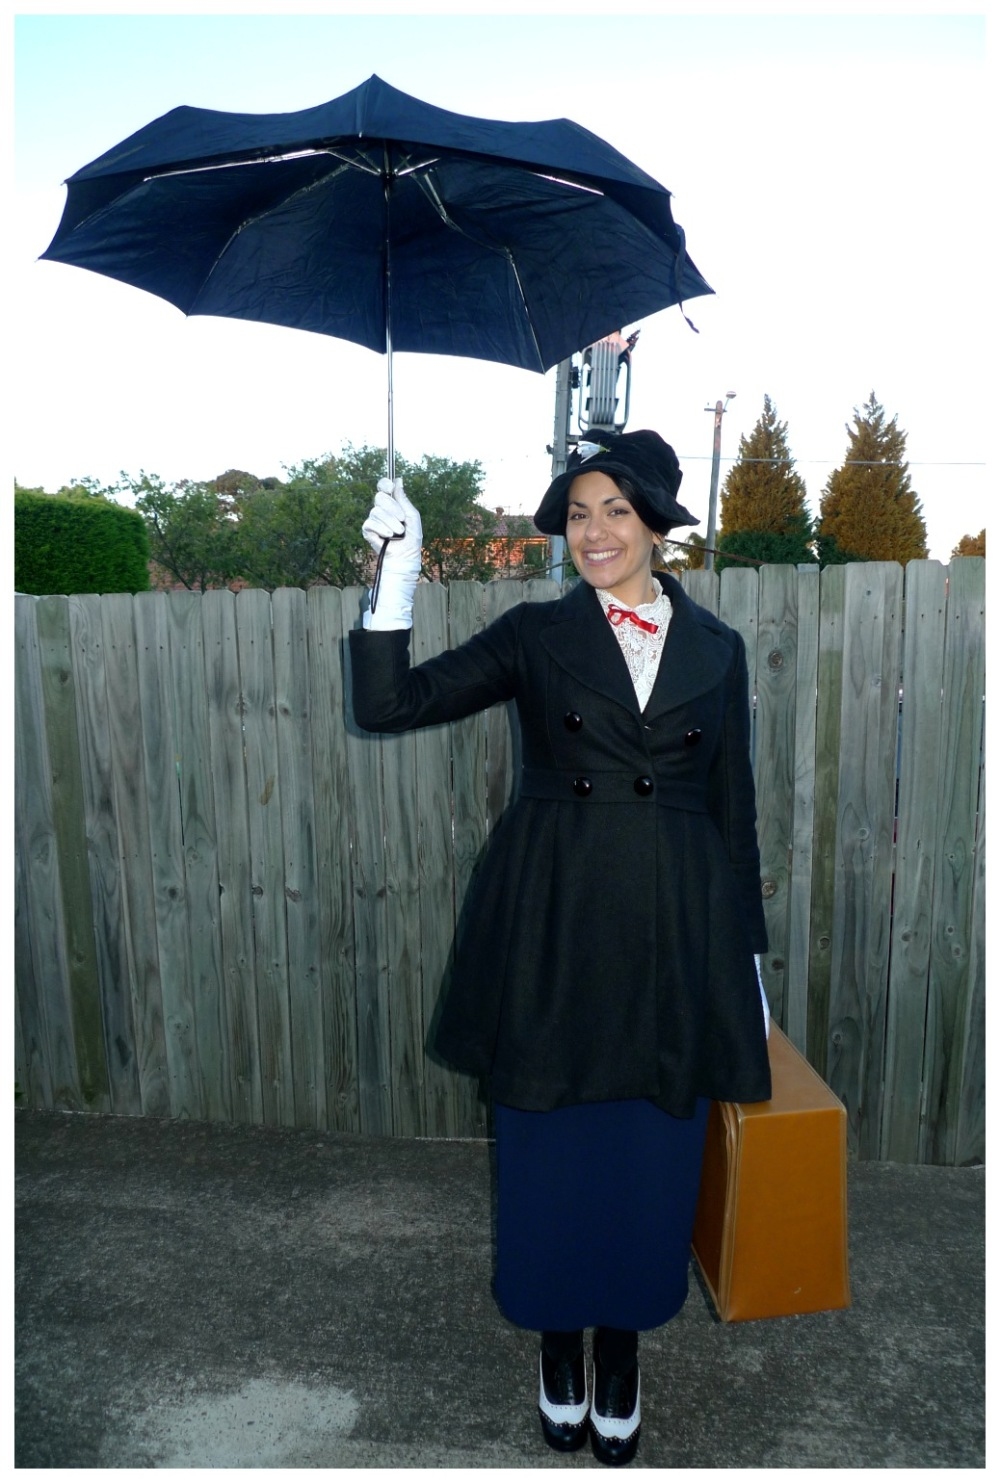 Day 330: Mary Poppins